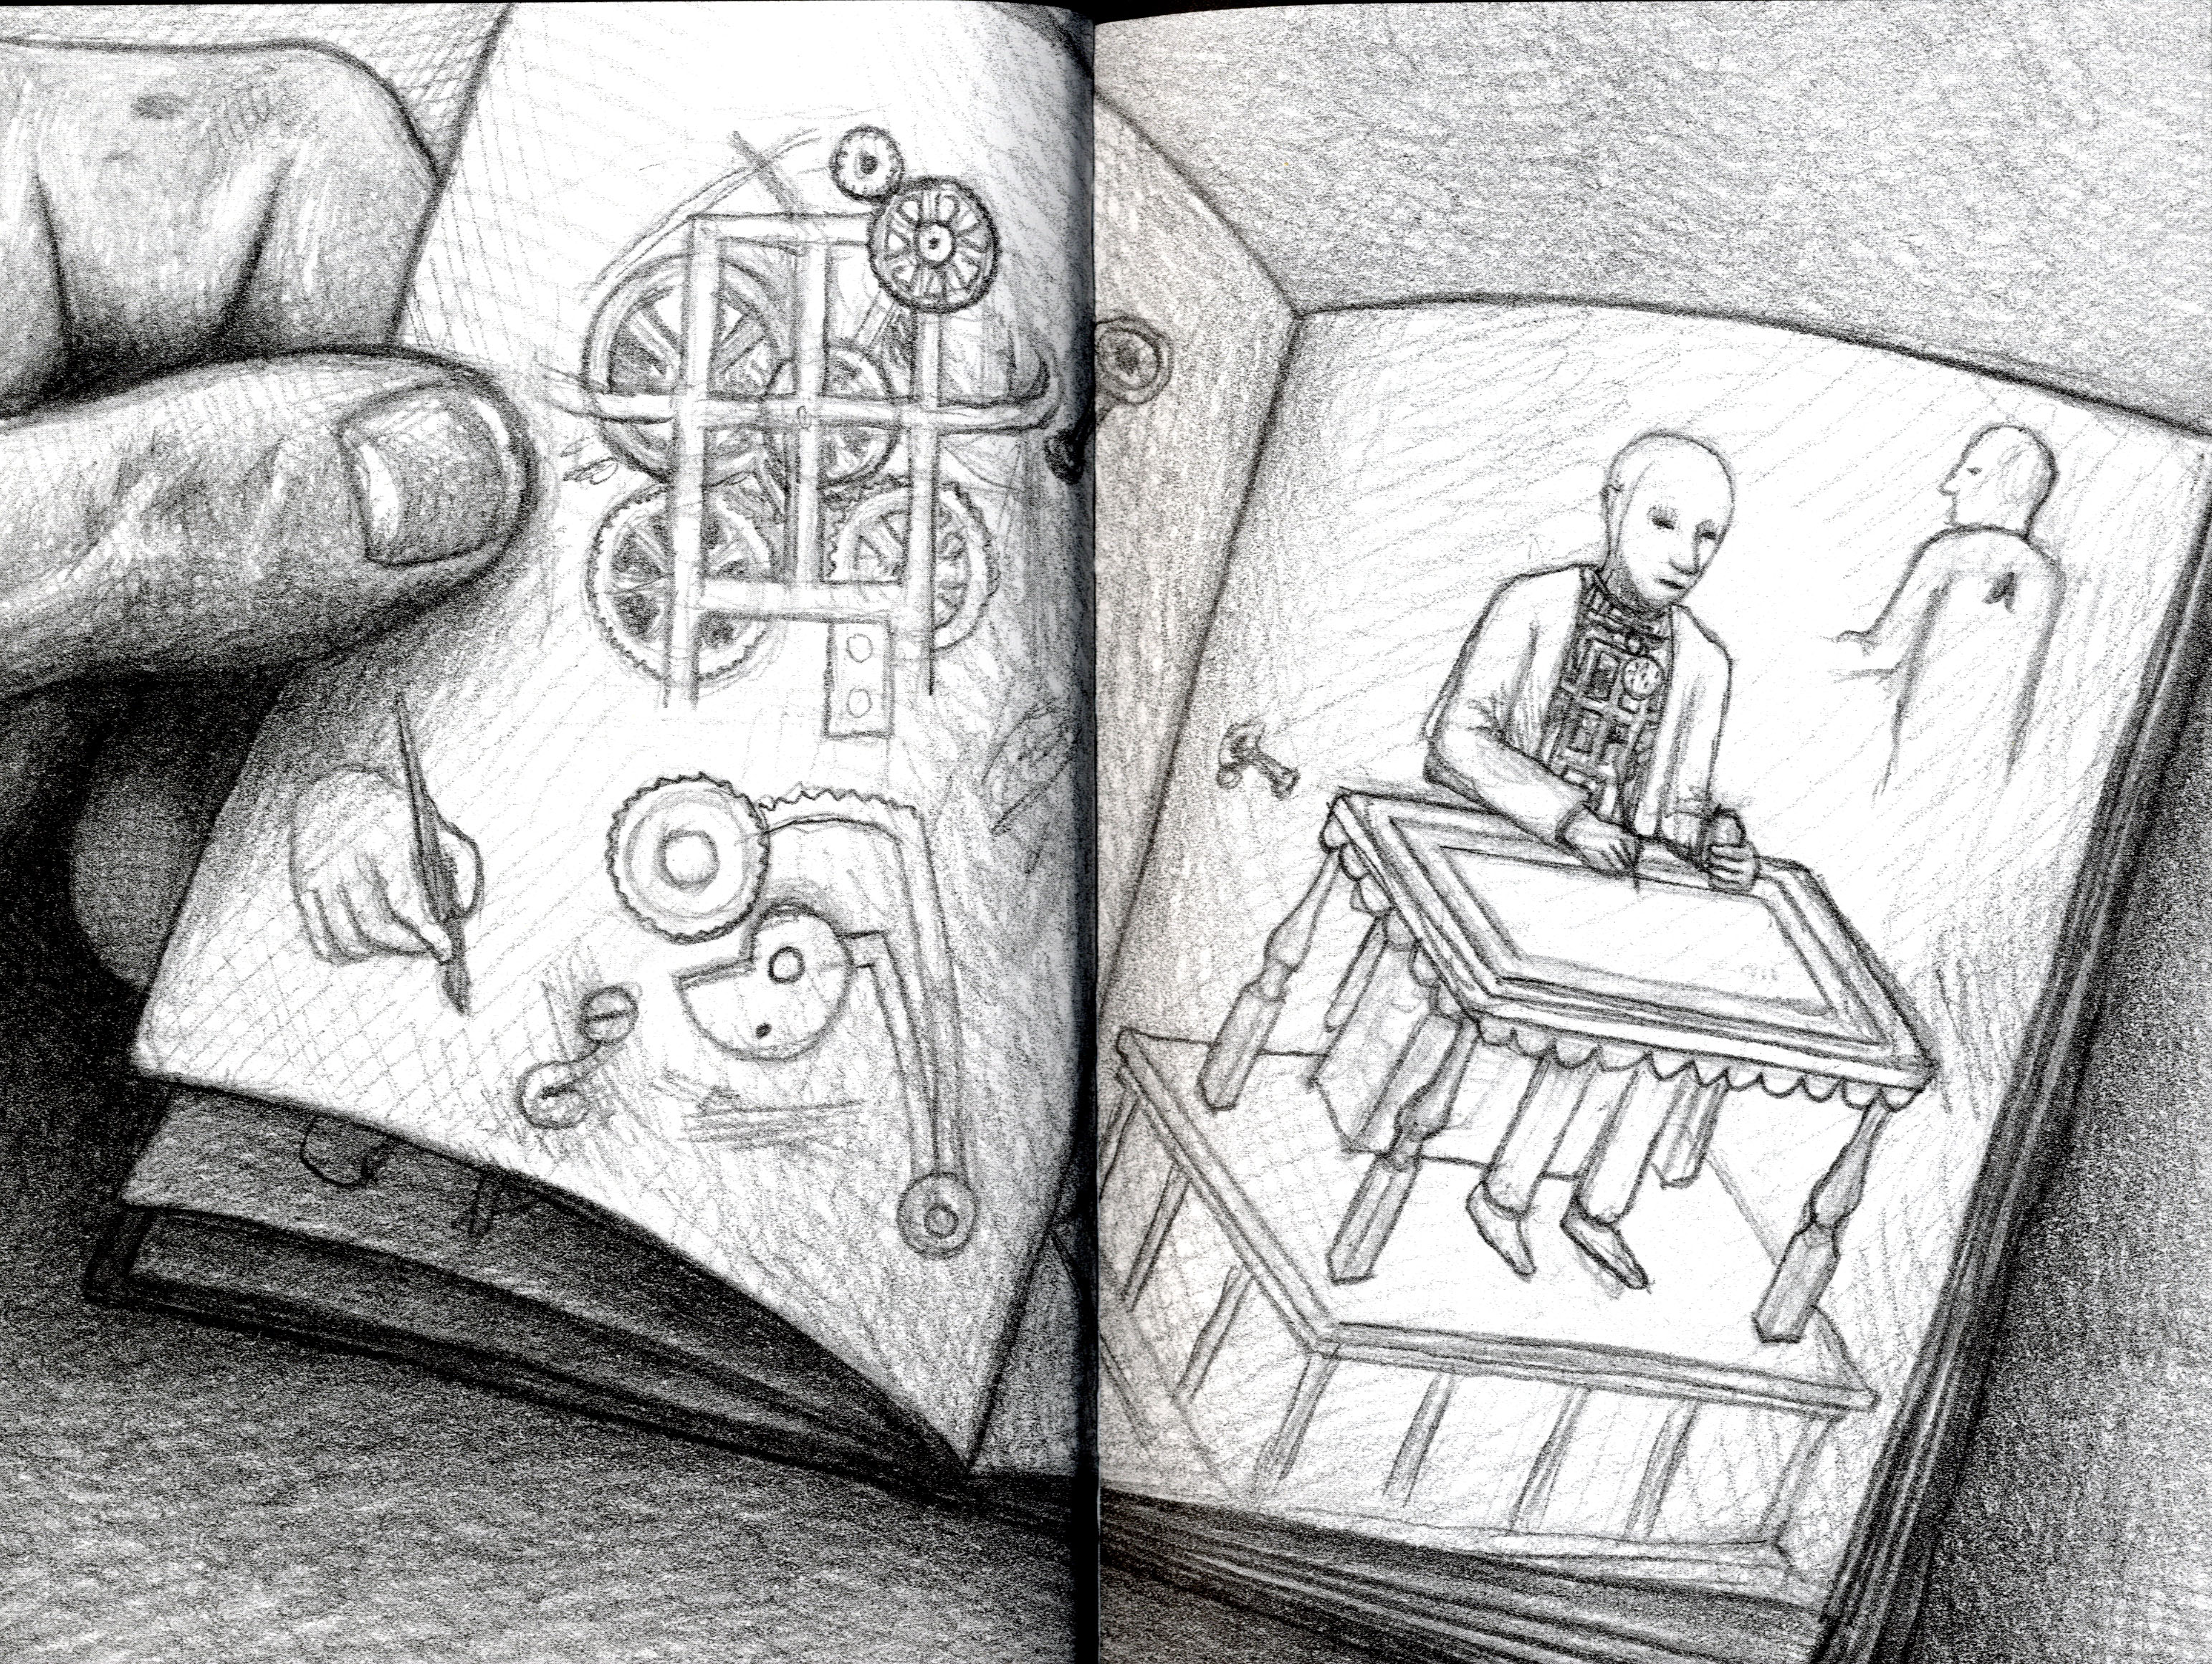 children-caldecott-theinventionofhugocabret_inside_2008